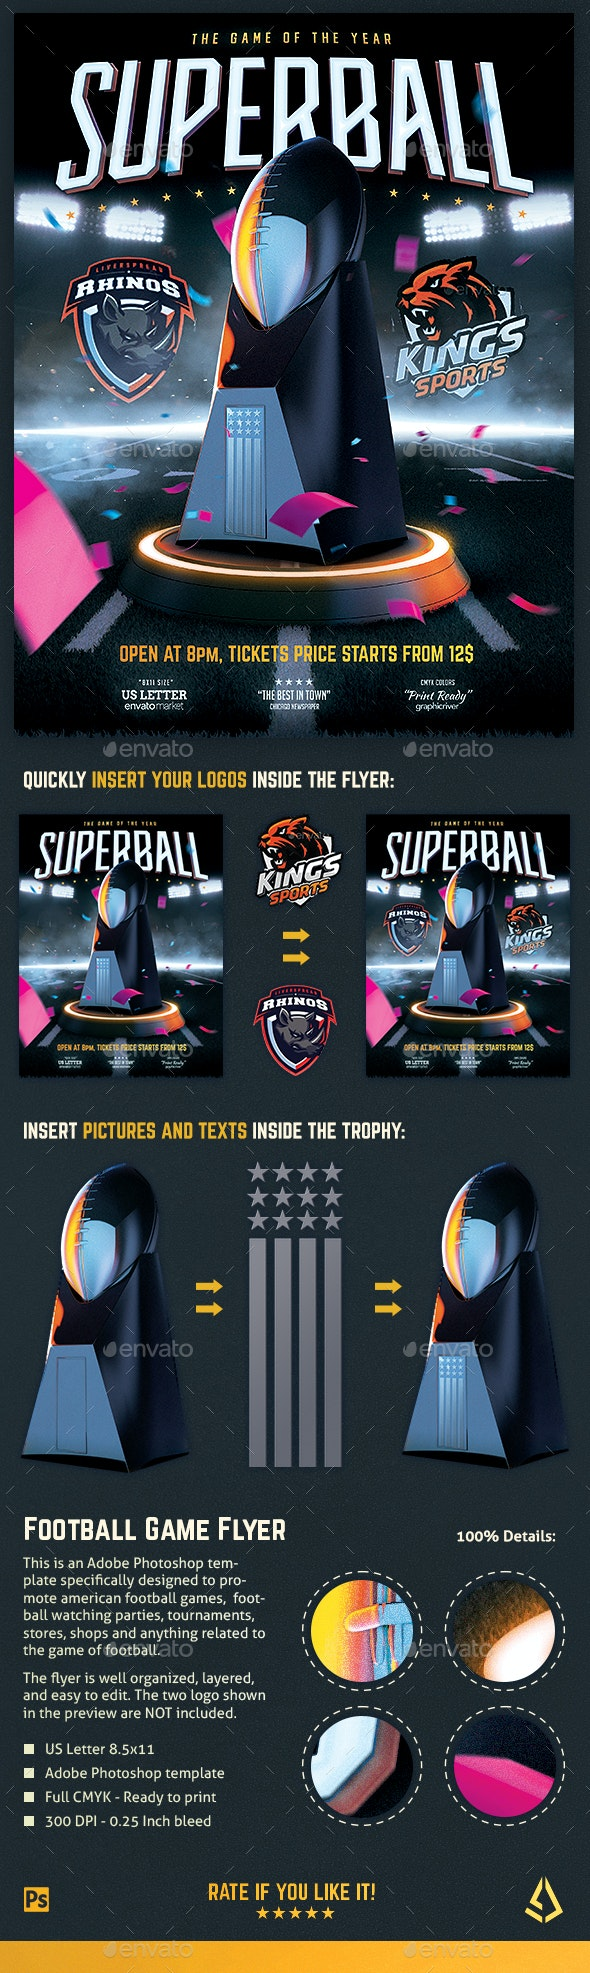 Football Superball Flyer American Football Match Poster Template - Sports Events